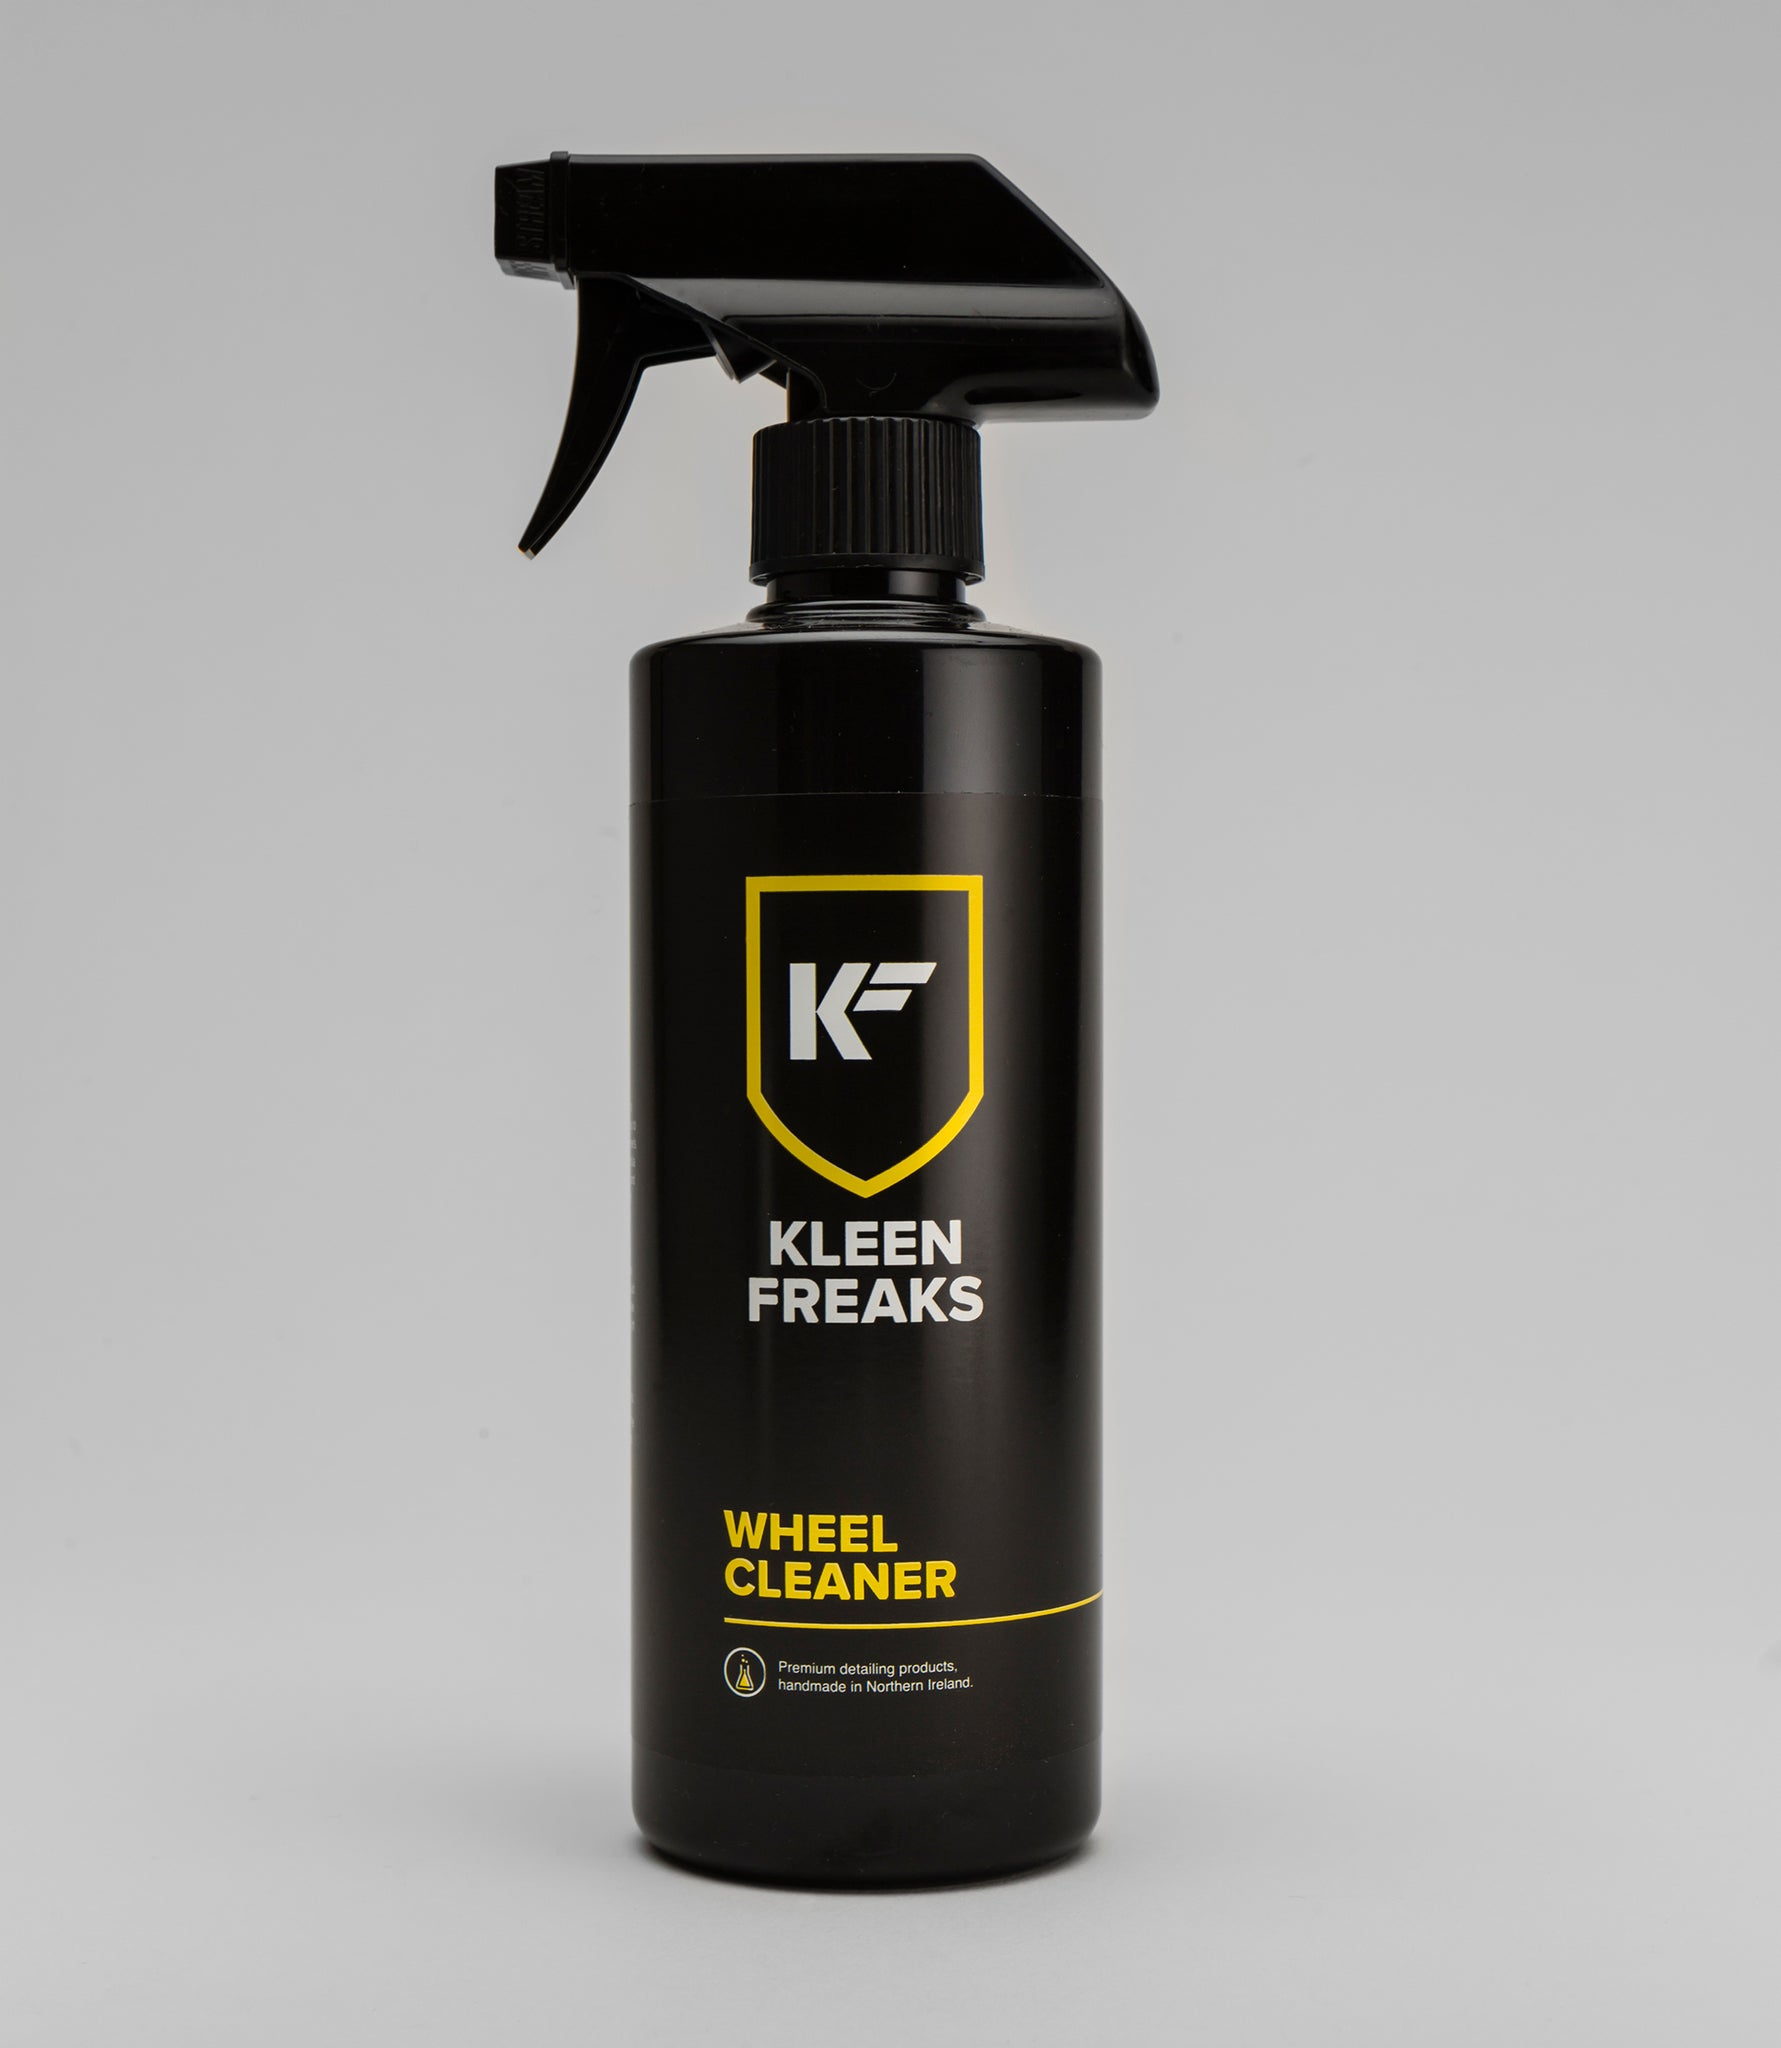 Kleen Freaks Acid Free Wheel Cleaner